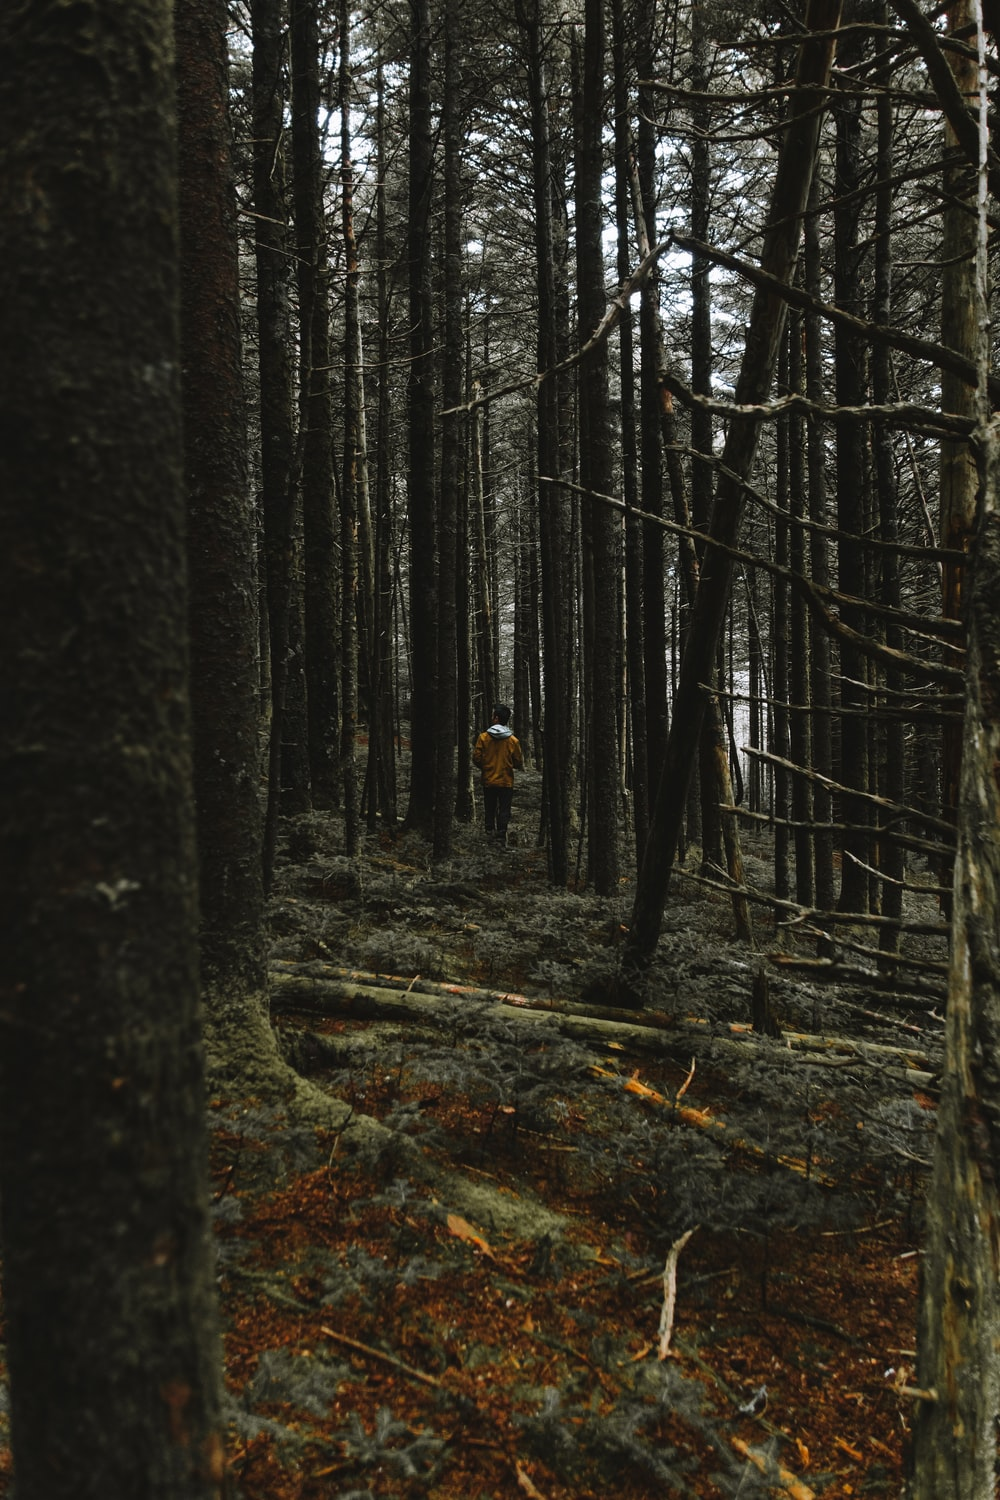 person surrounded by trees